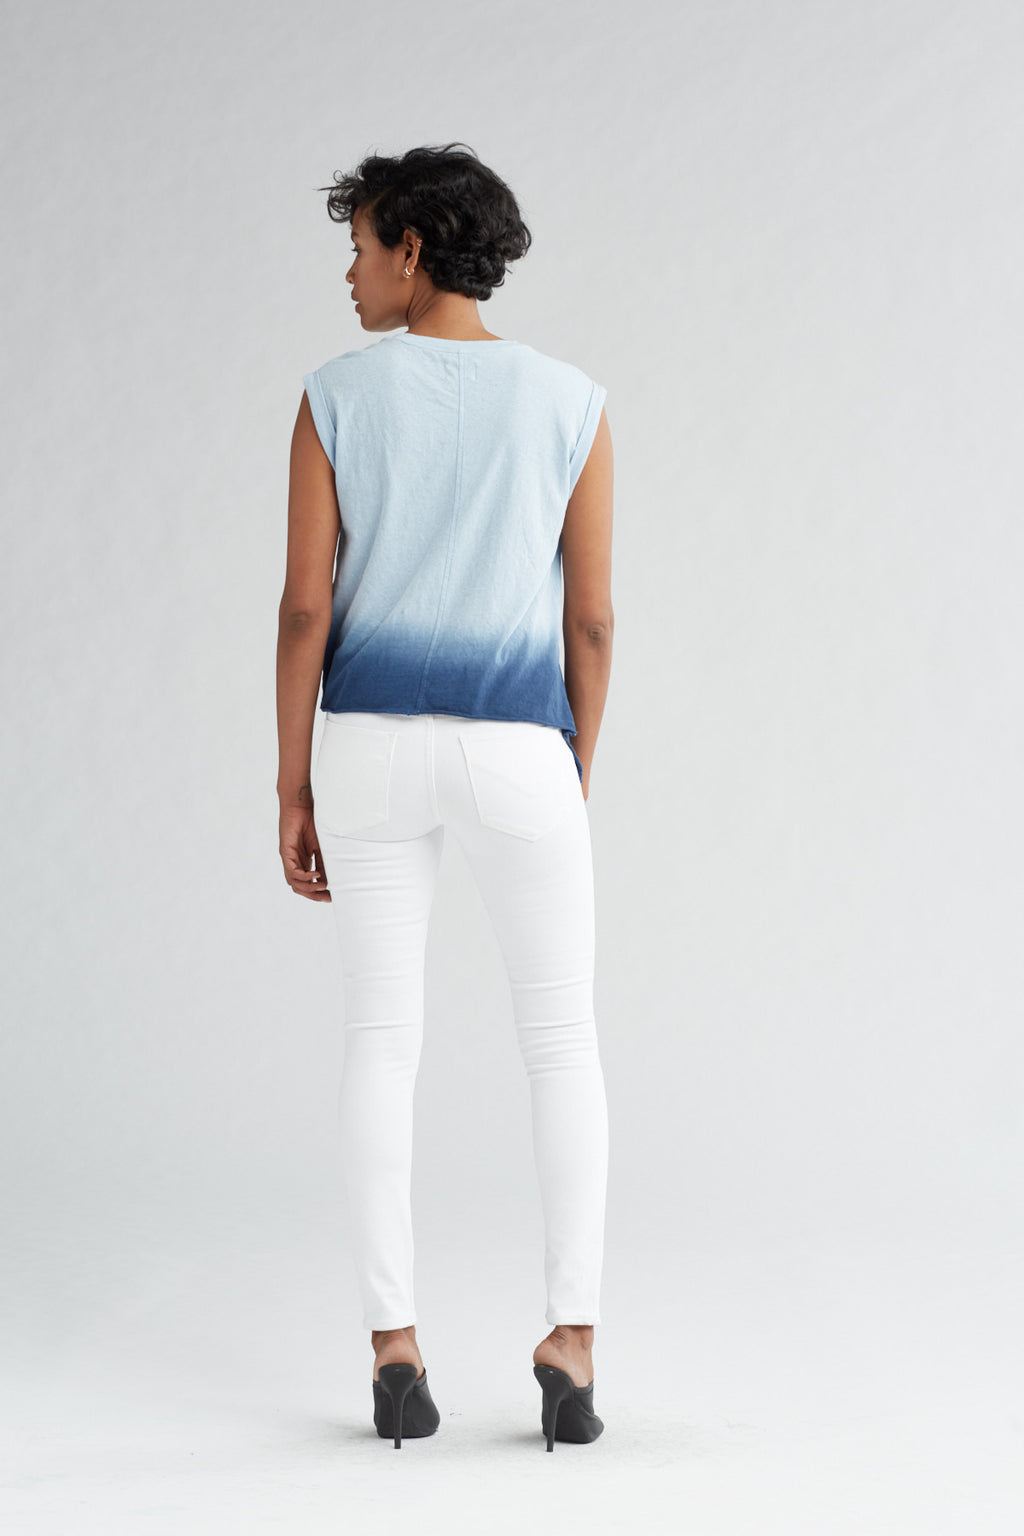 ROLLED SLEEVE TANK - NAVY OMBRE - Image 4